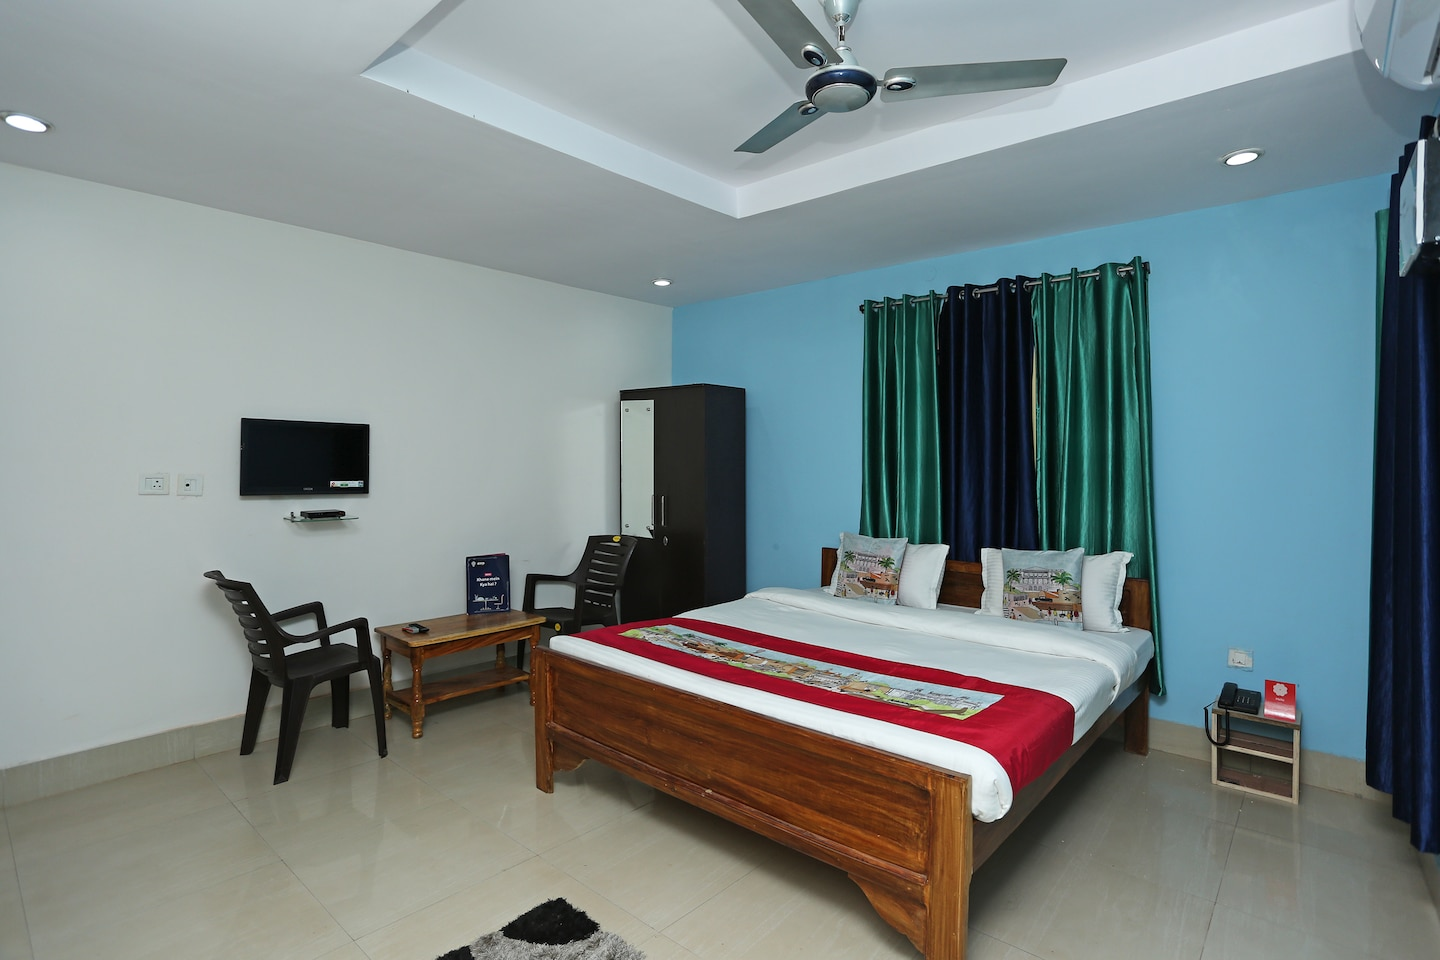 OYO 9245 near KIIT University Bhubaneswar  Bhubaneswar Hotel Reviews Photos Offers  OYO Rooms